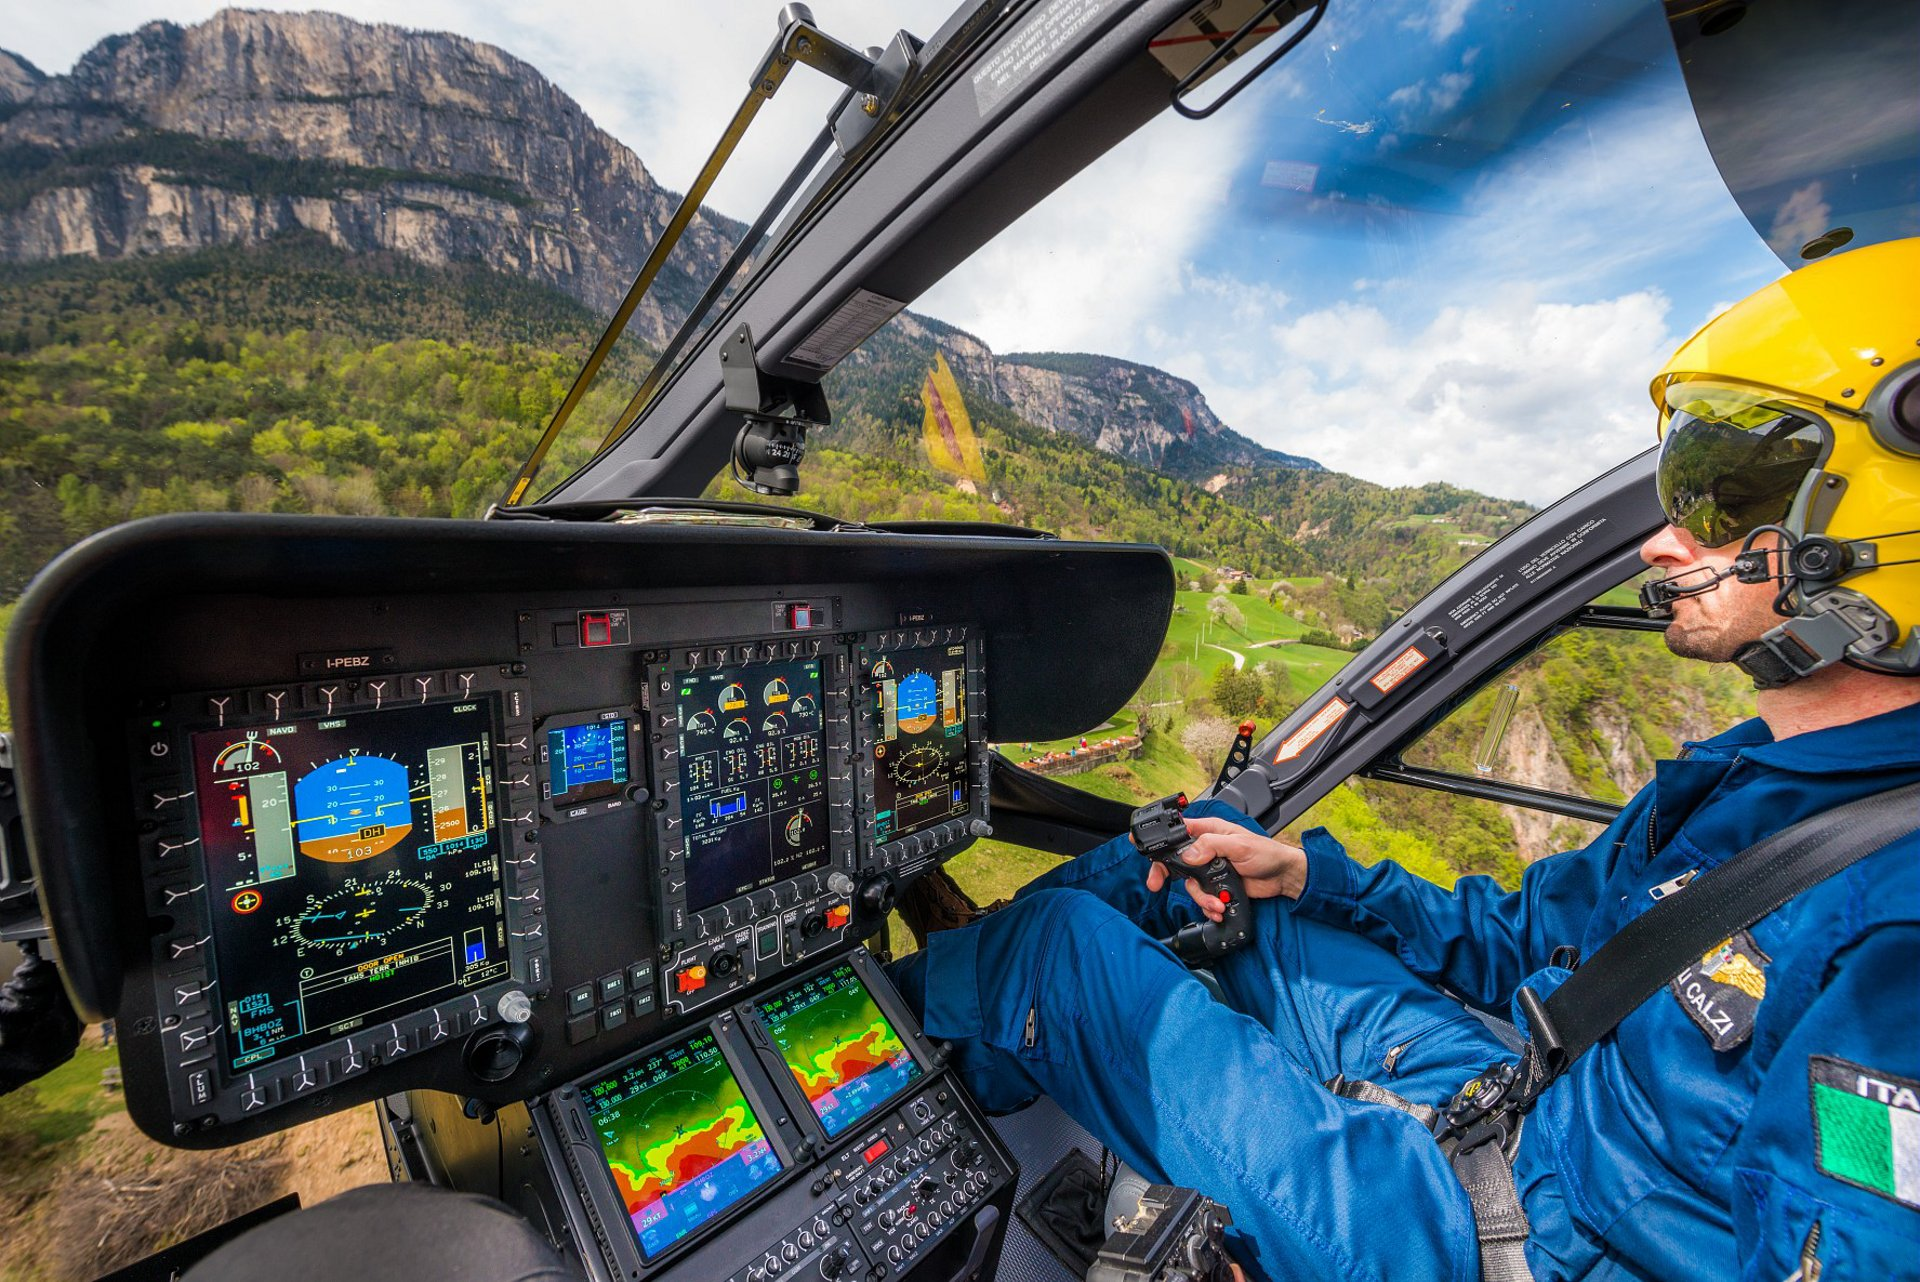 Compared with Helionix Step 2, Helionix Step 3 improves the situational awareness of pilots and flight crews, thanks to the new Synthetic Vision System which identifies obstacles.